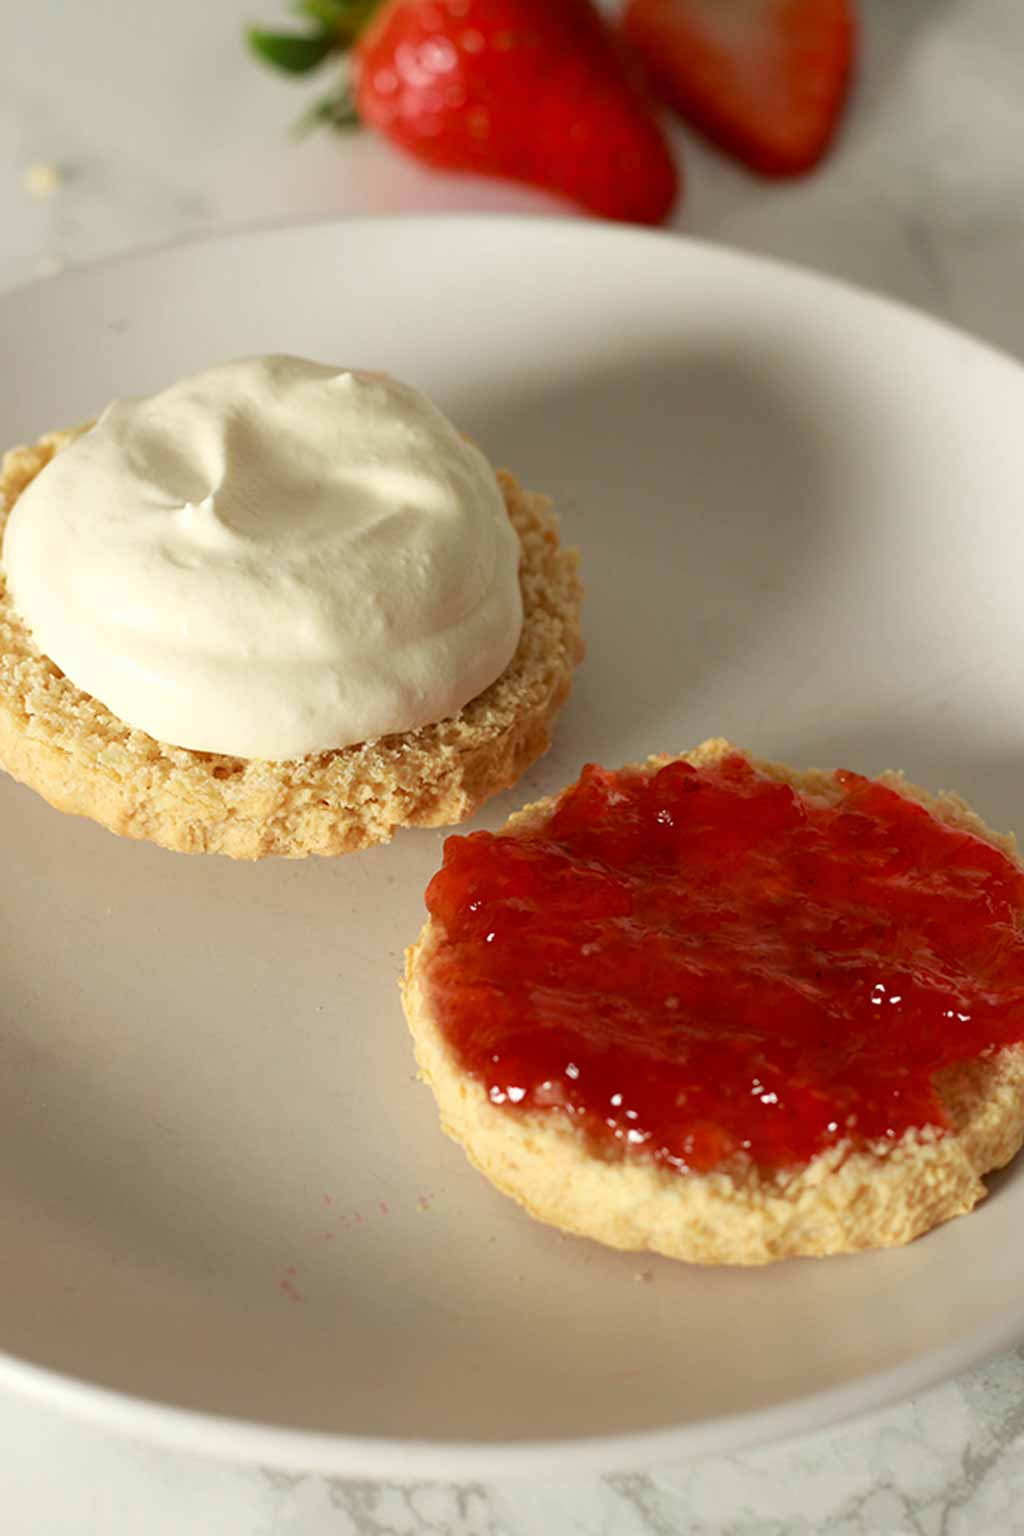 Two Halves Of A Scone On A White Plate. One Has Jam On It And The Other Has Cream On It.